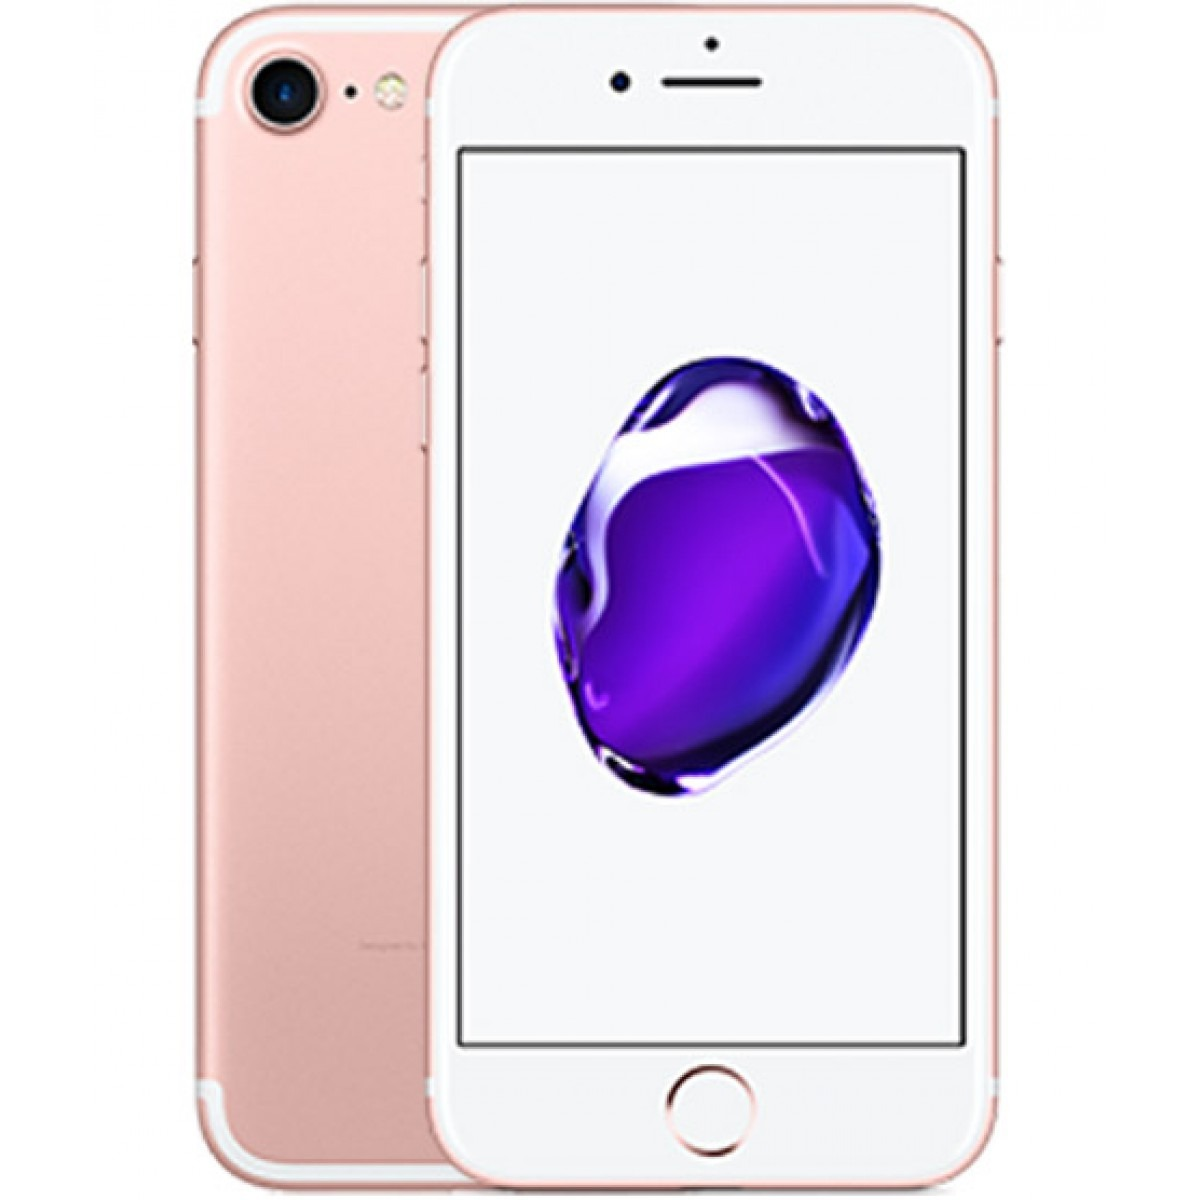 SIMフリー/iPhone 7/MNCJ2J/A/Apple/アップル/iPhone/A1779「新品 未使用品」SIMフリー iPhone7 ...